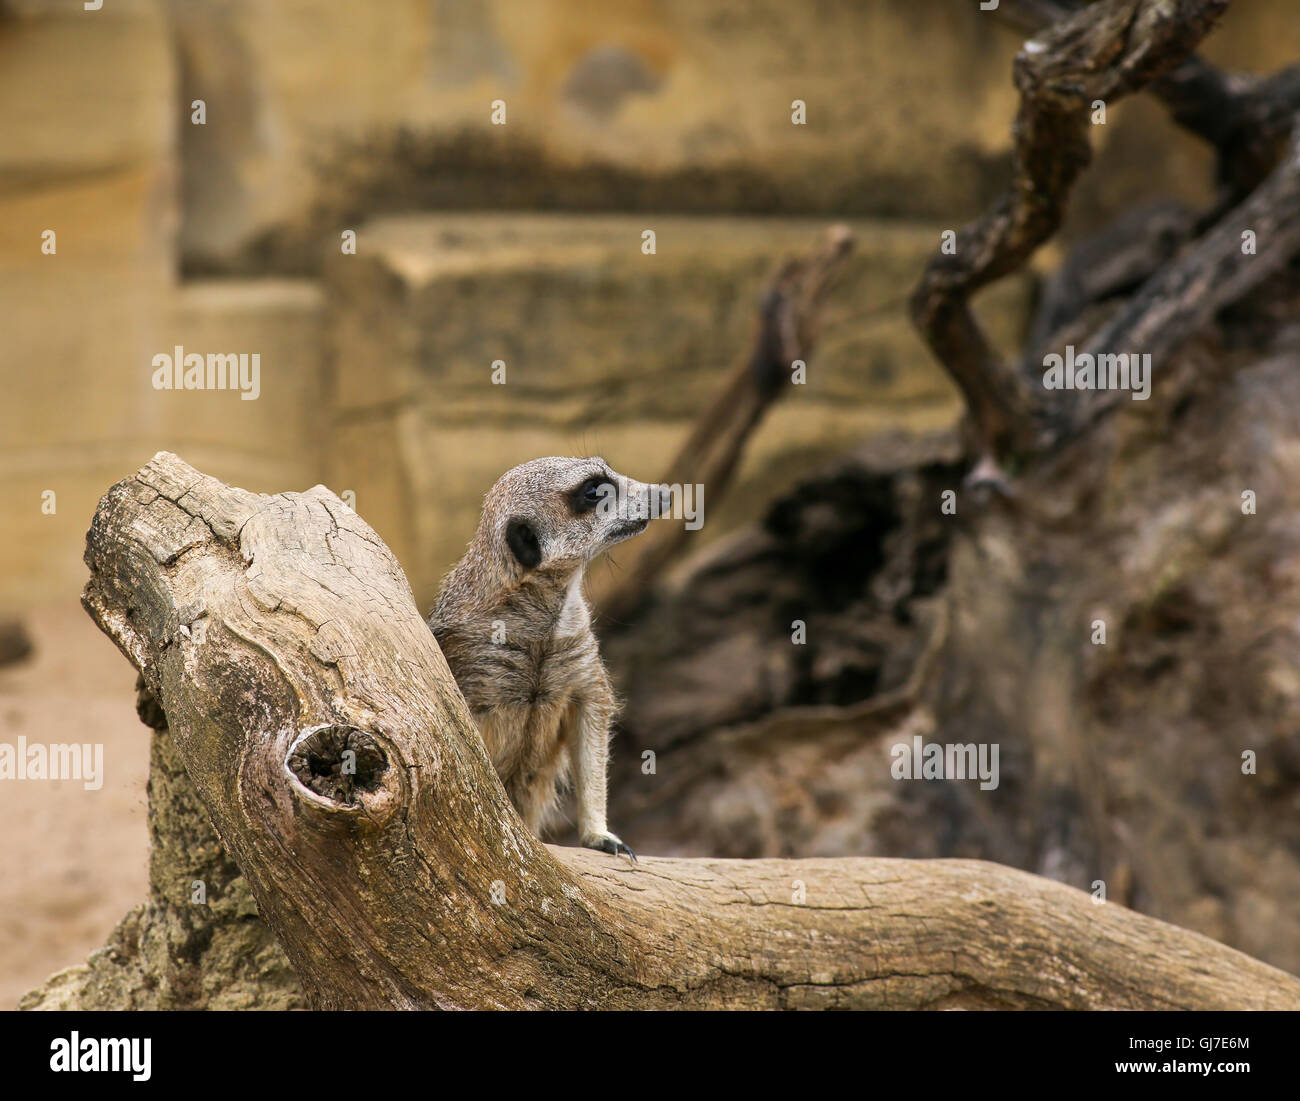 Meerkat Suricata suricatta standing and watching in Zoo background with rocks - Stock Image